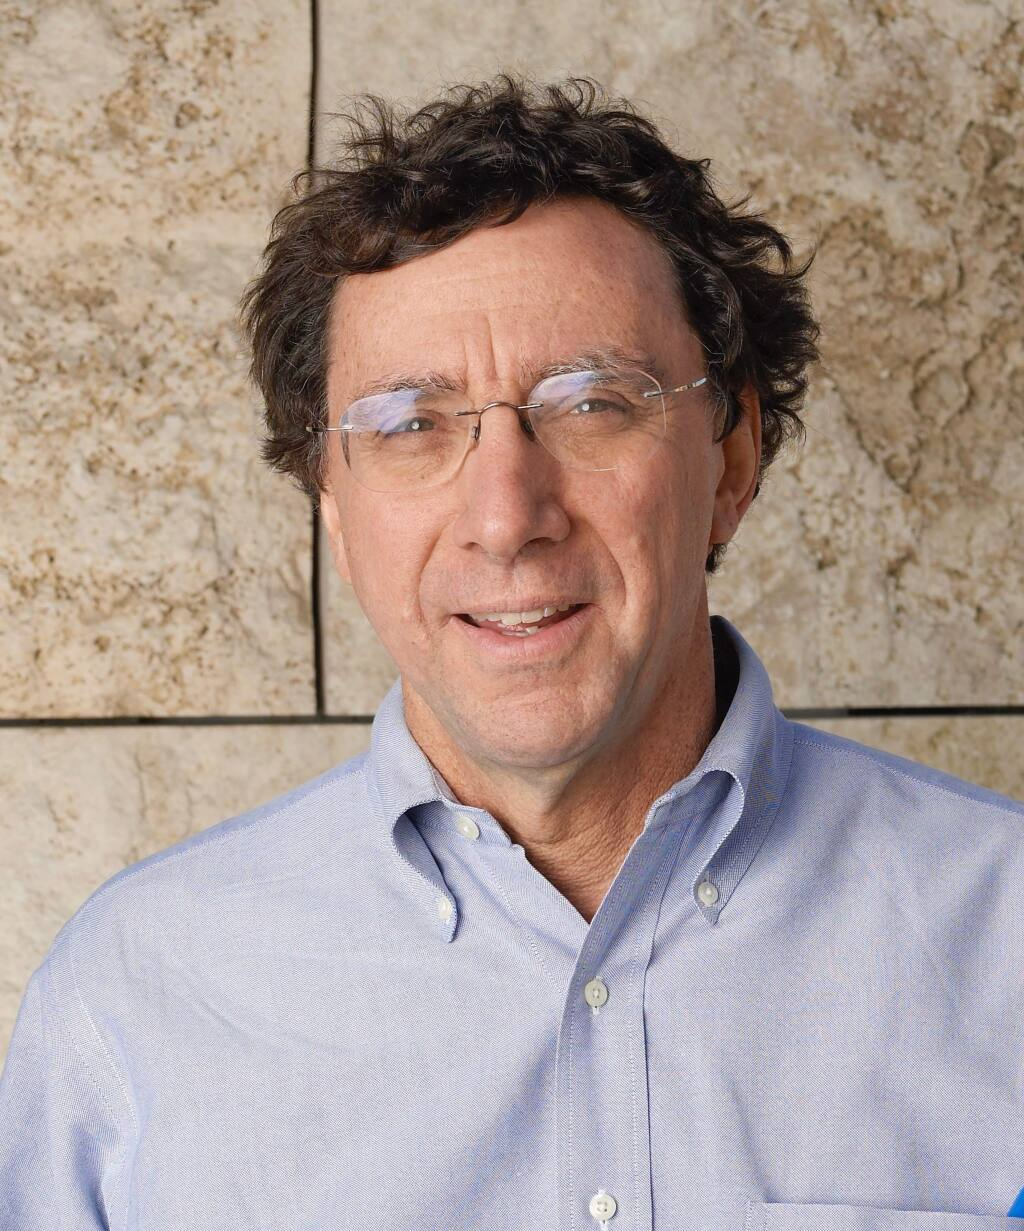 John Markoff, author of 'Machines of Loving Grace' and other books, will appear in the Sonoma Speakers Series on Monday, Feb. 6. (Submitted photo)